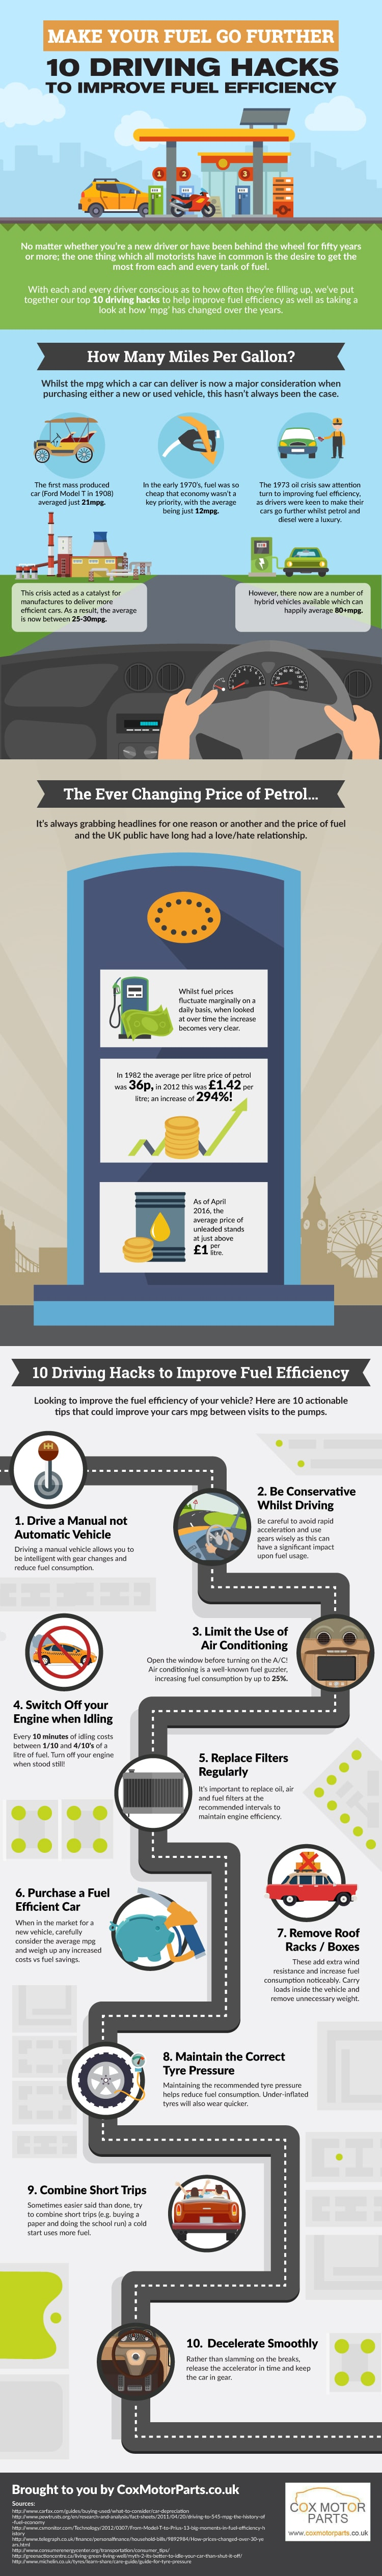 10 Driving Hacks To Improve Fuel Efficiency [Infographic]